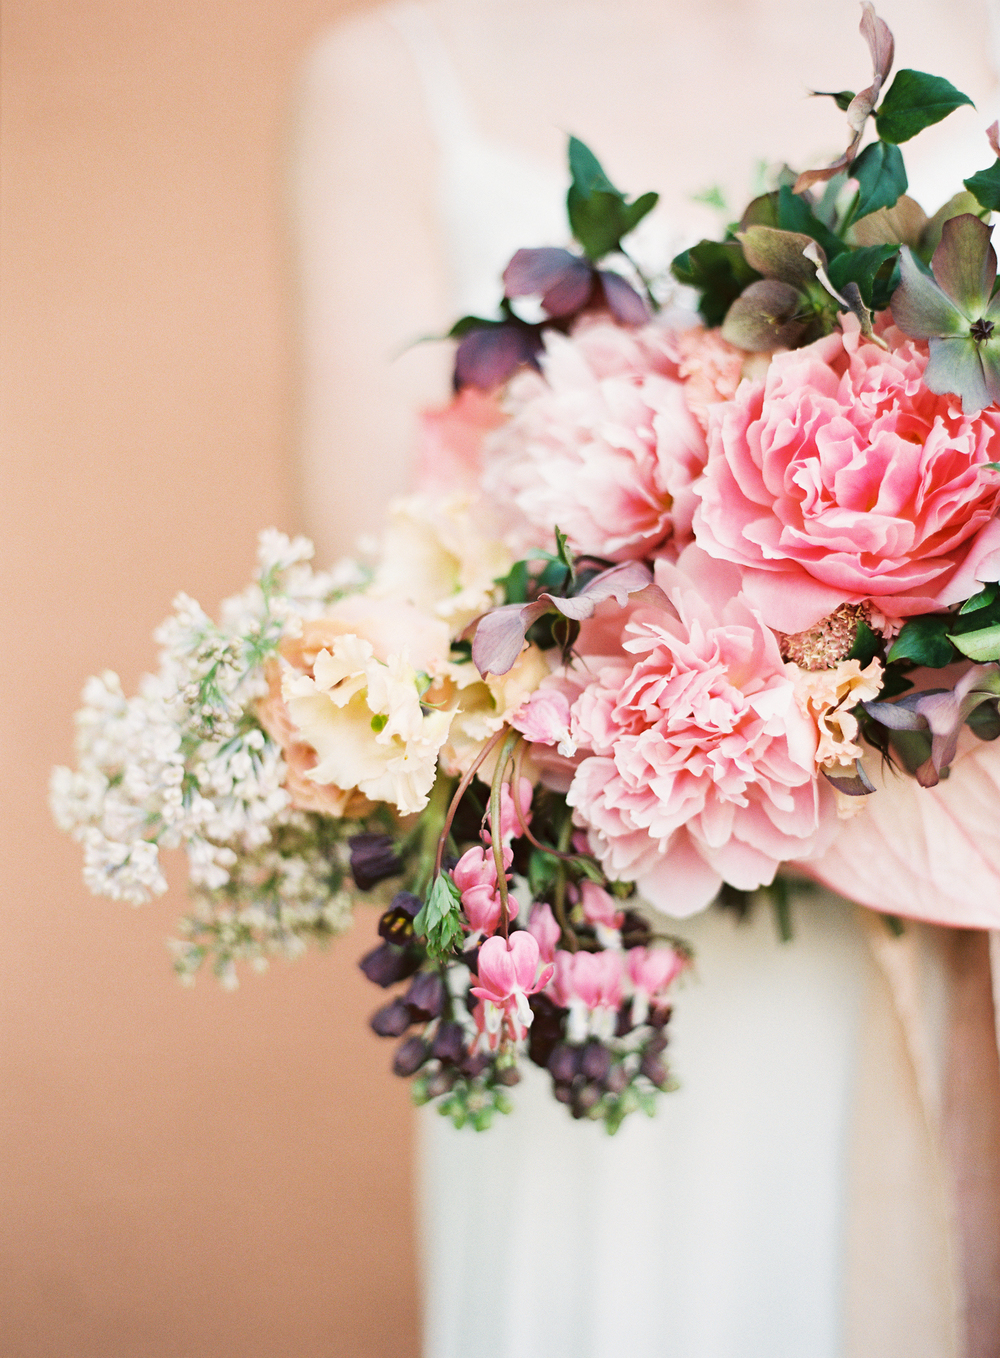 terracotta pink bouquet wedding inspiration designed by The Wildflowers | follow us on instagram: @ thewildflowers.events